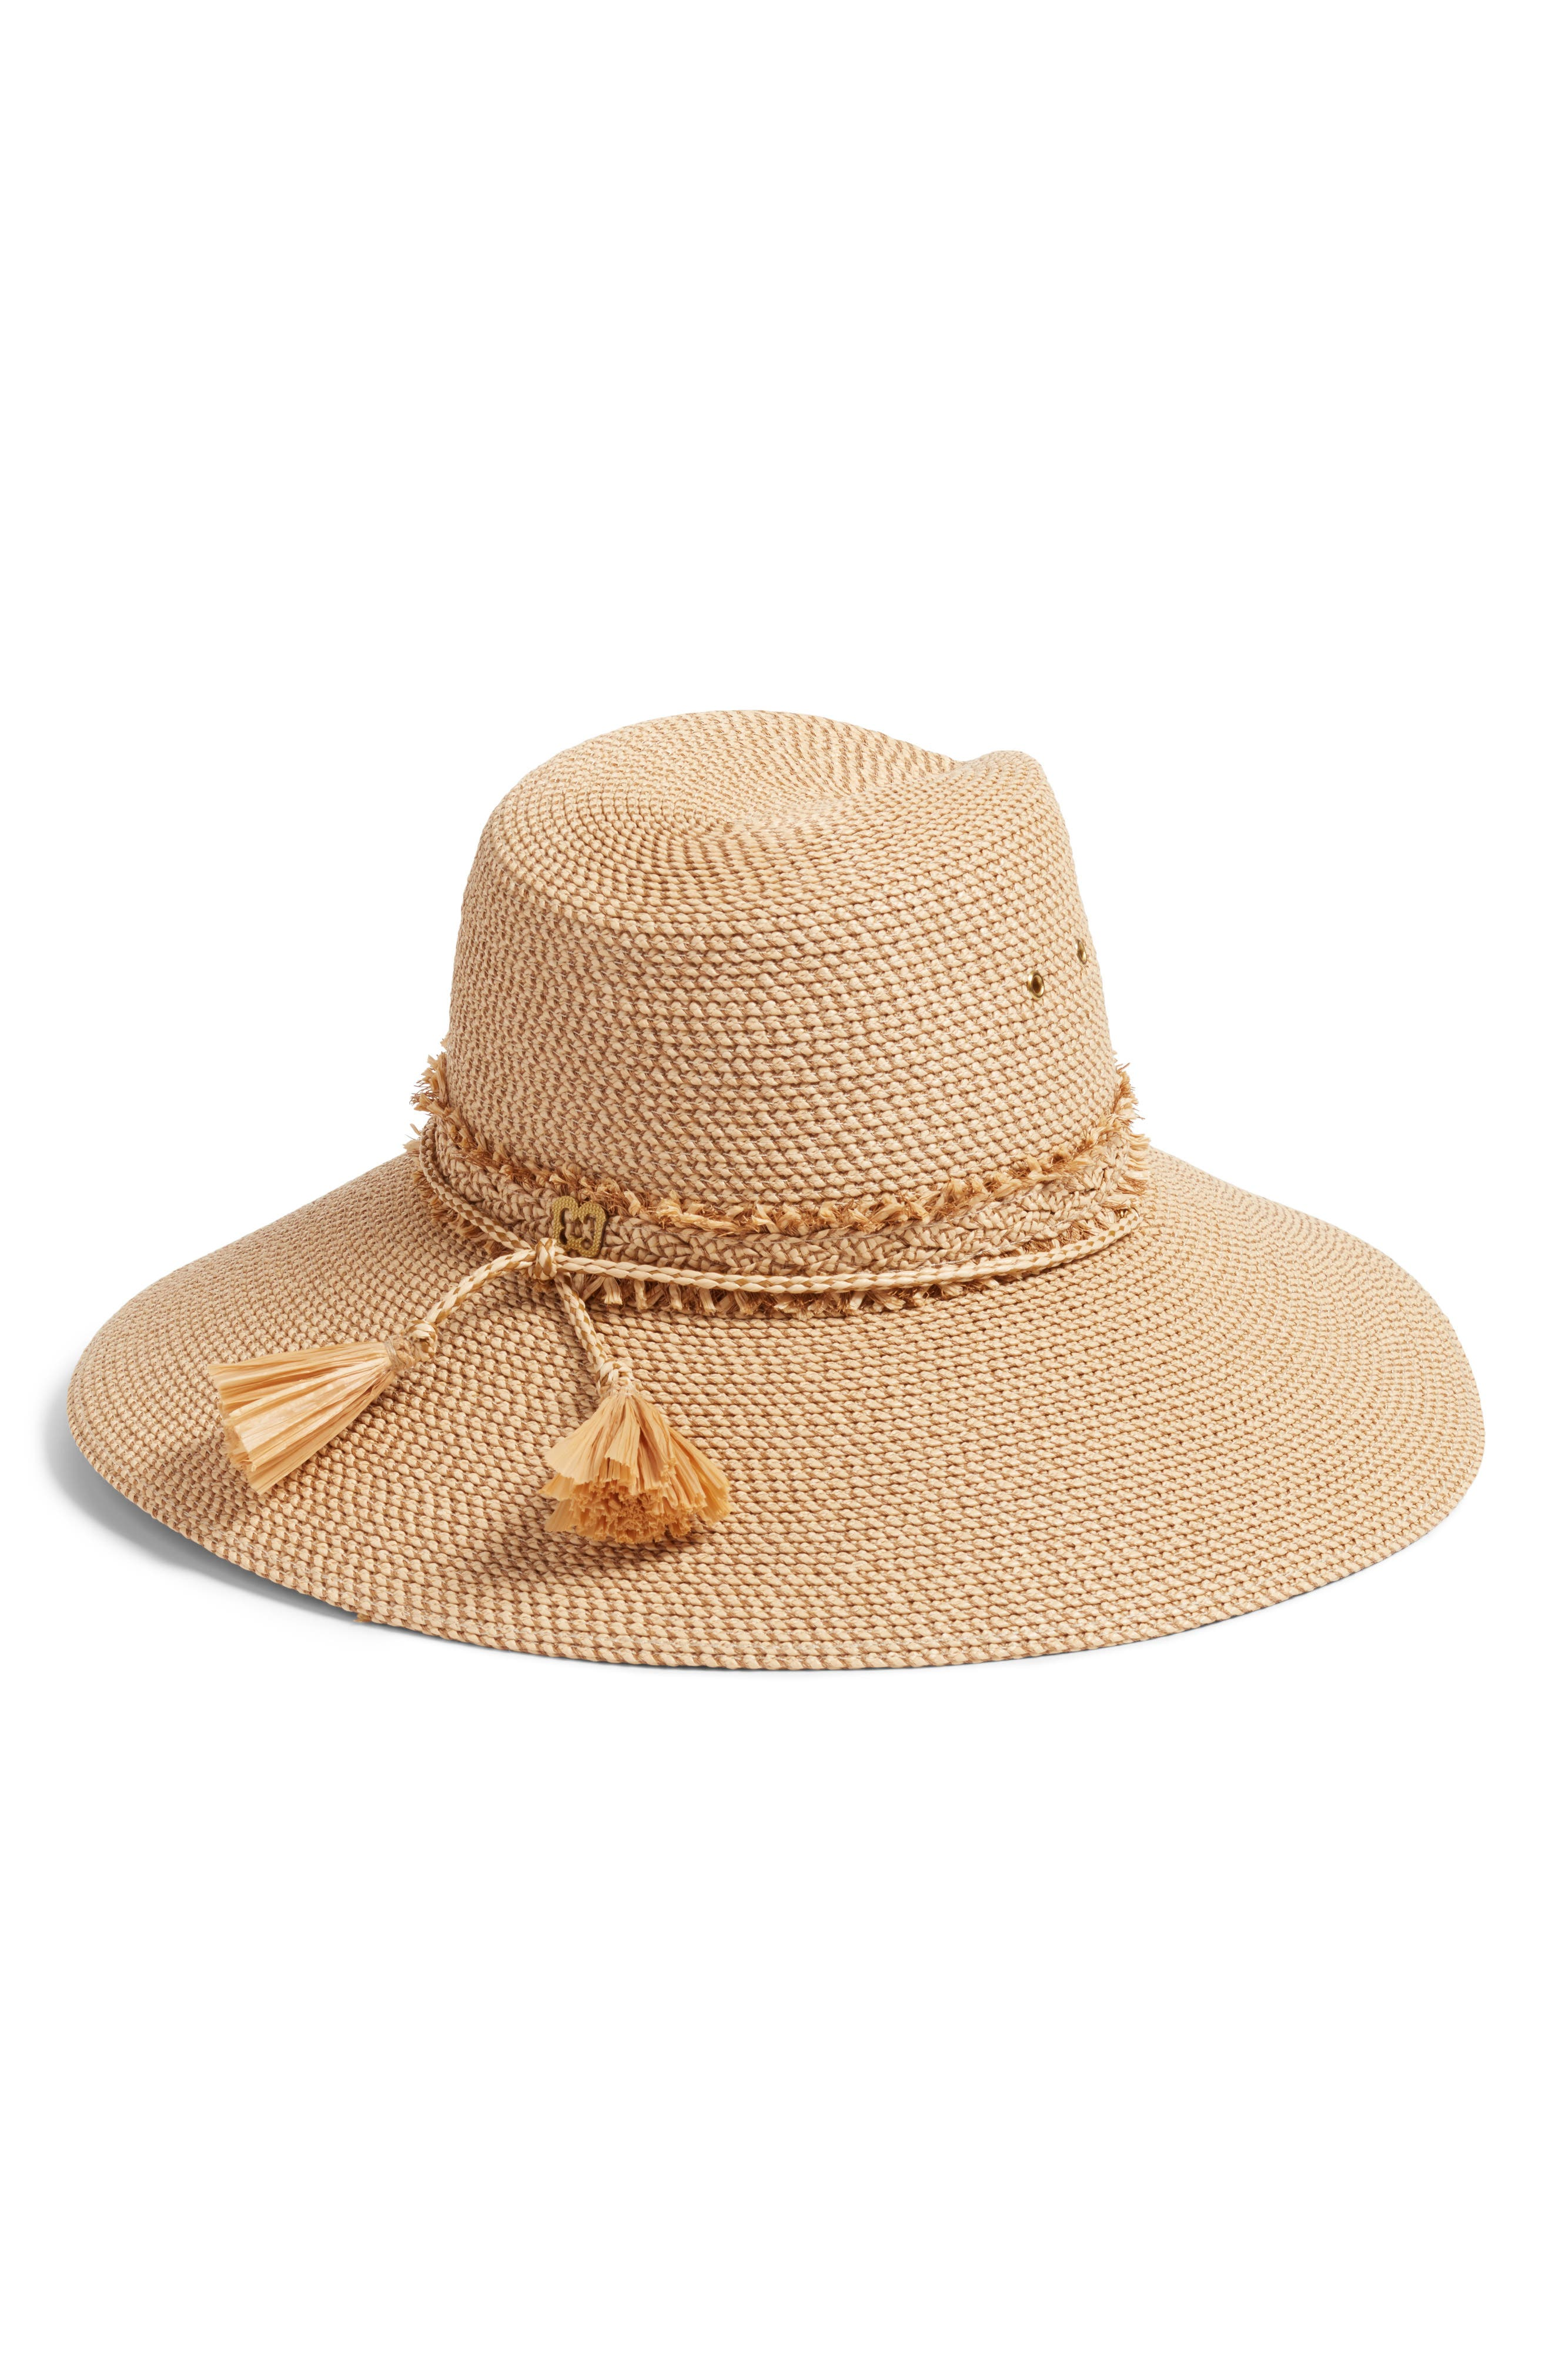 ERIC JAVITS, Voyager Squishee<sup>®</sup> Sun Hat, Alternate thumbnail 2, color, PEANUT